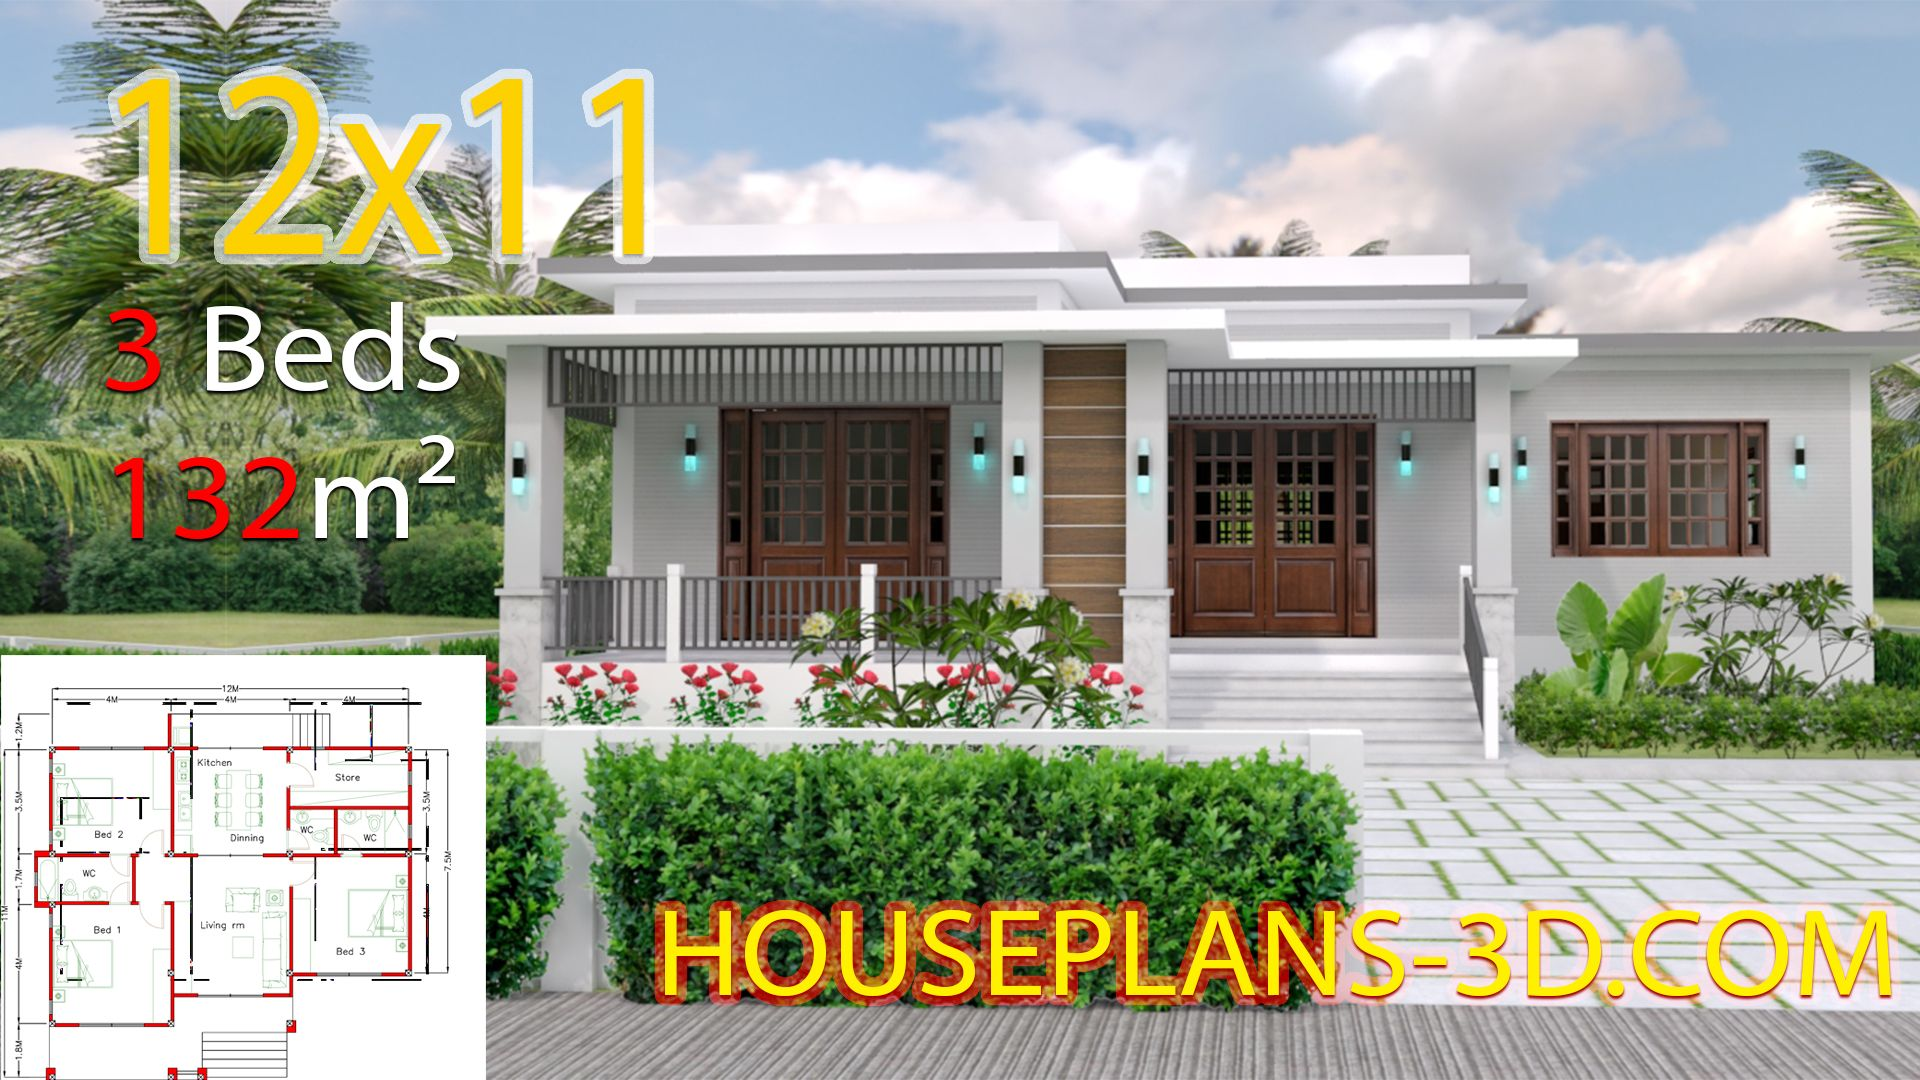 Home Design 12x11 With 3 Bedrooms Terrace Roof House Plans 3d House Plans House Design Hip Roof Design